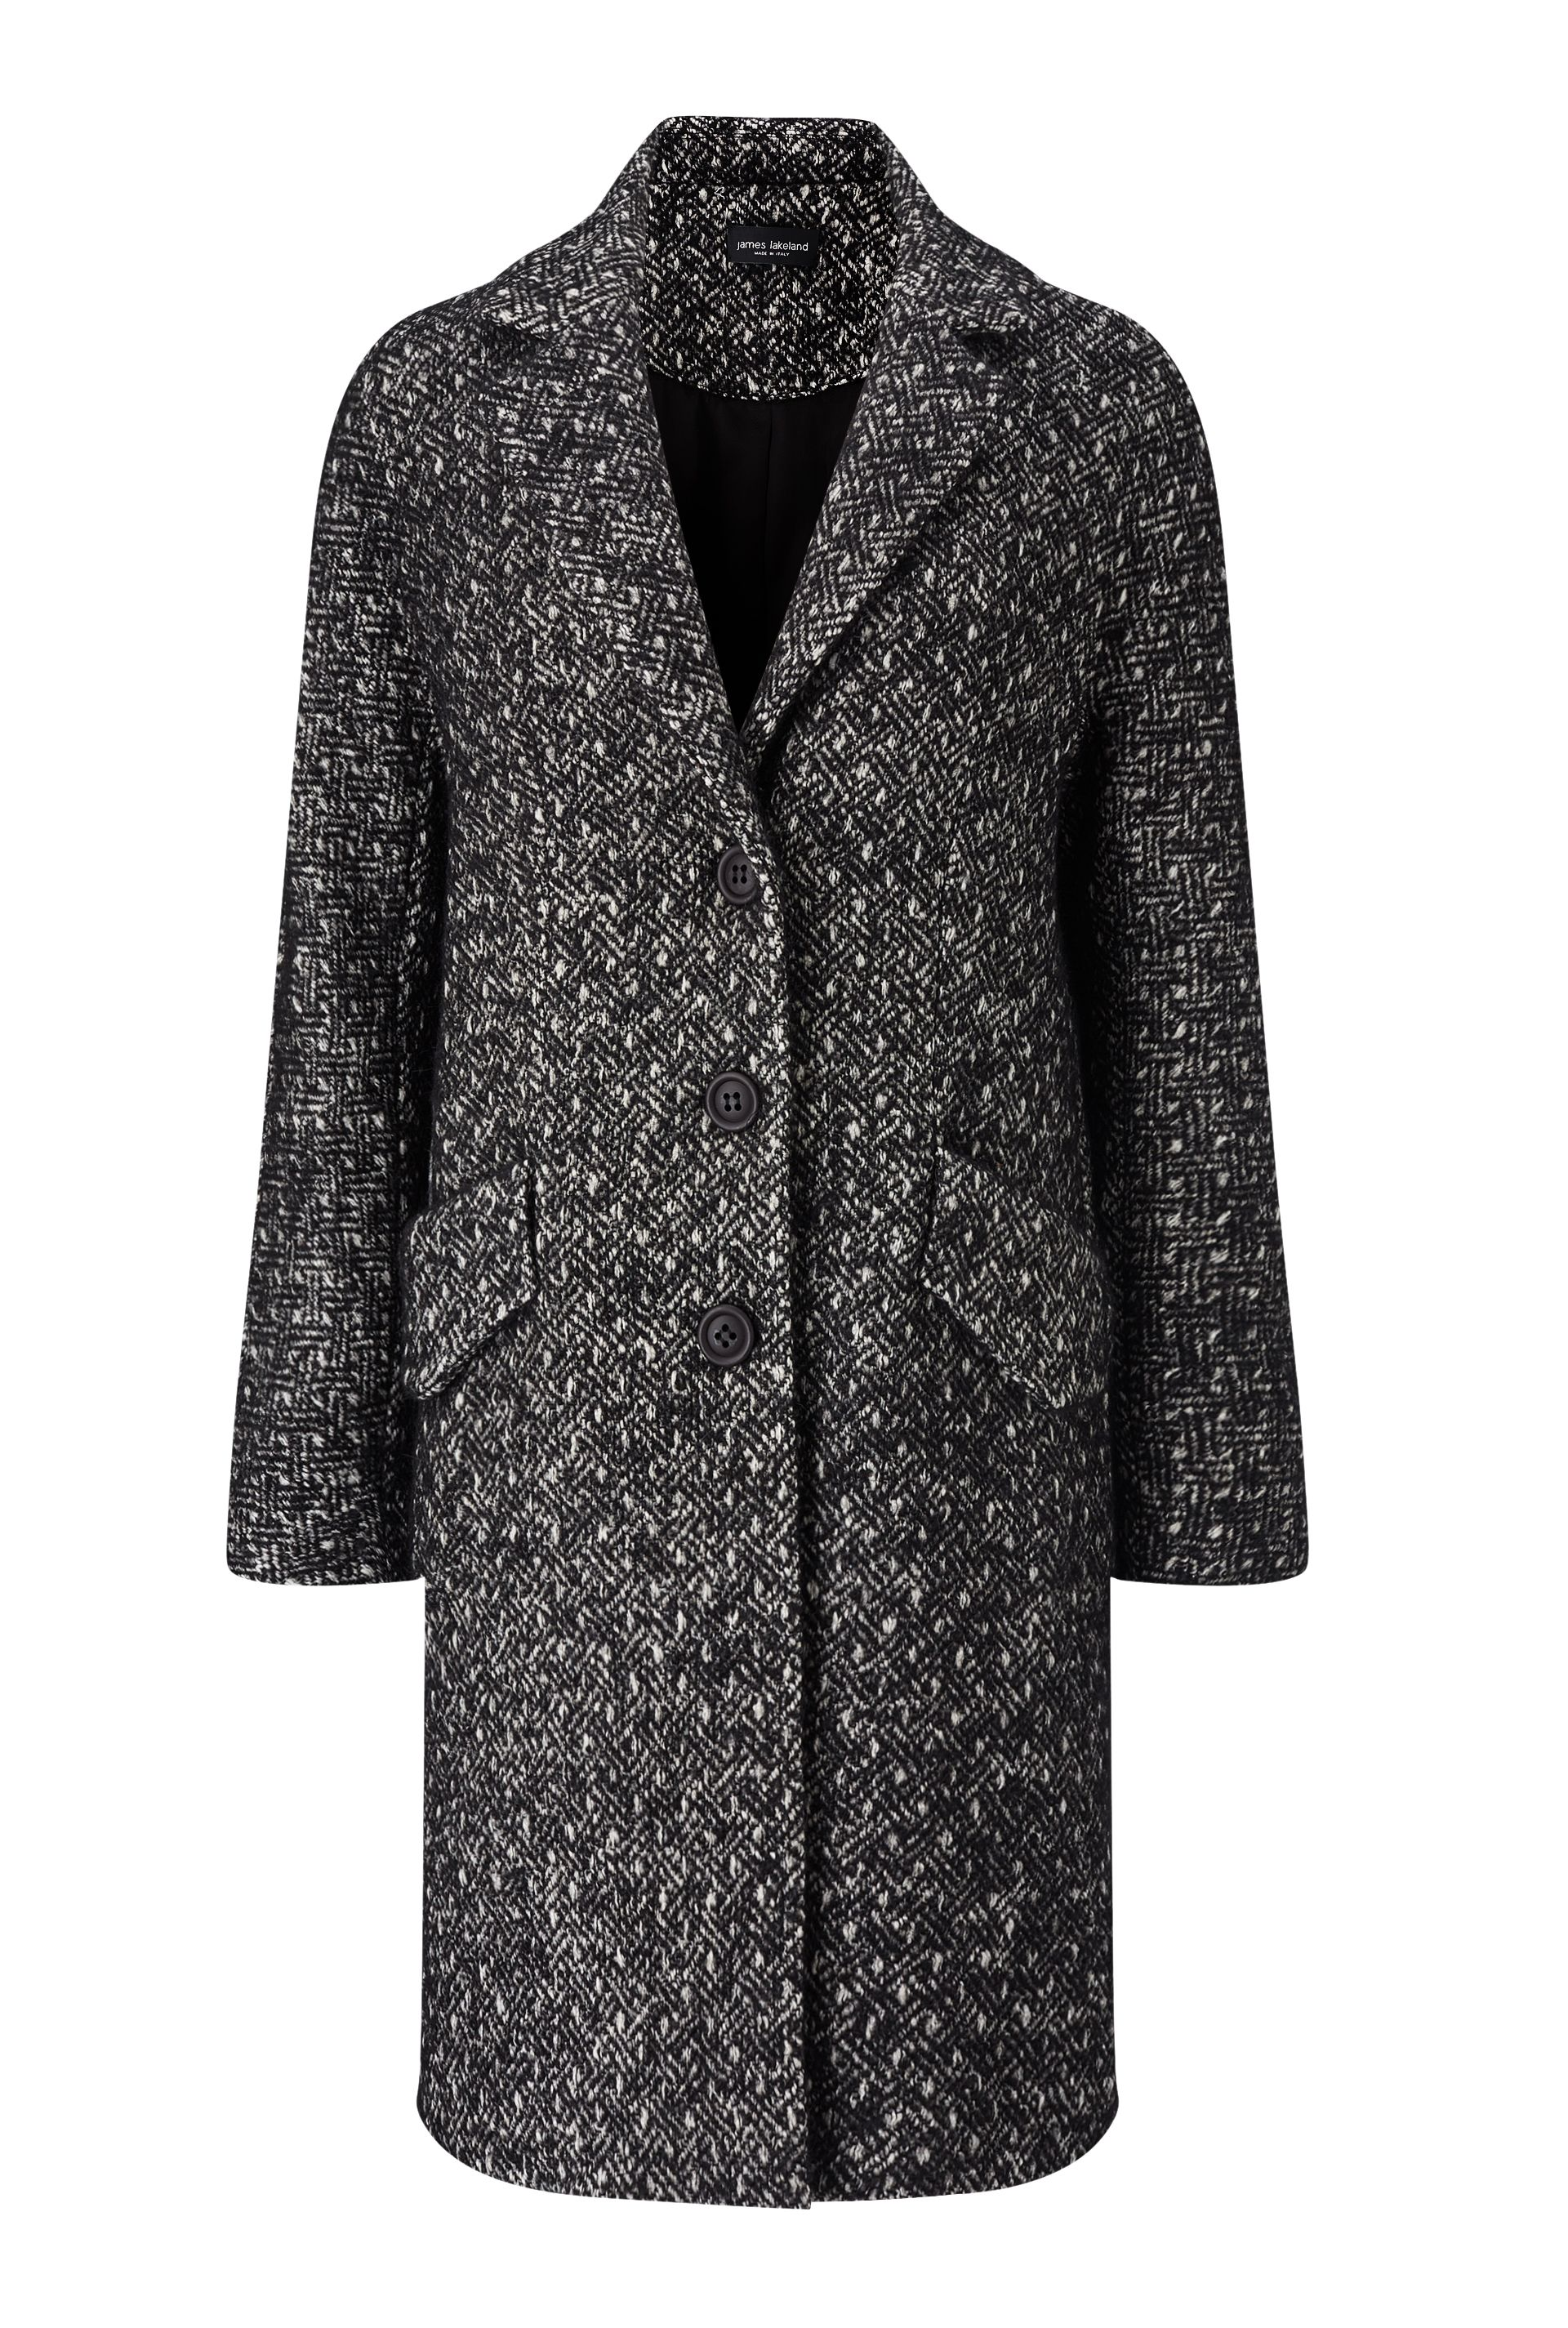 James Lakeland Drop Shoulder Coat Black